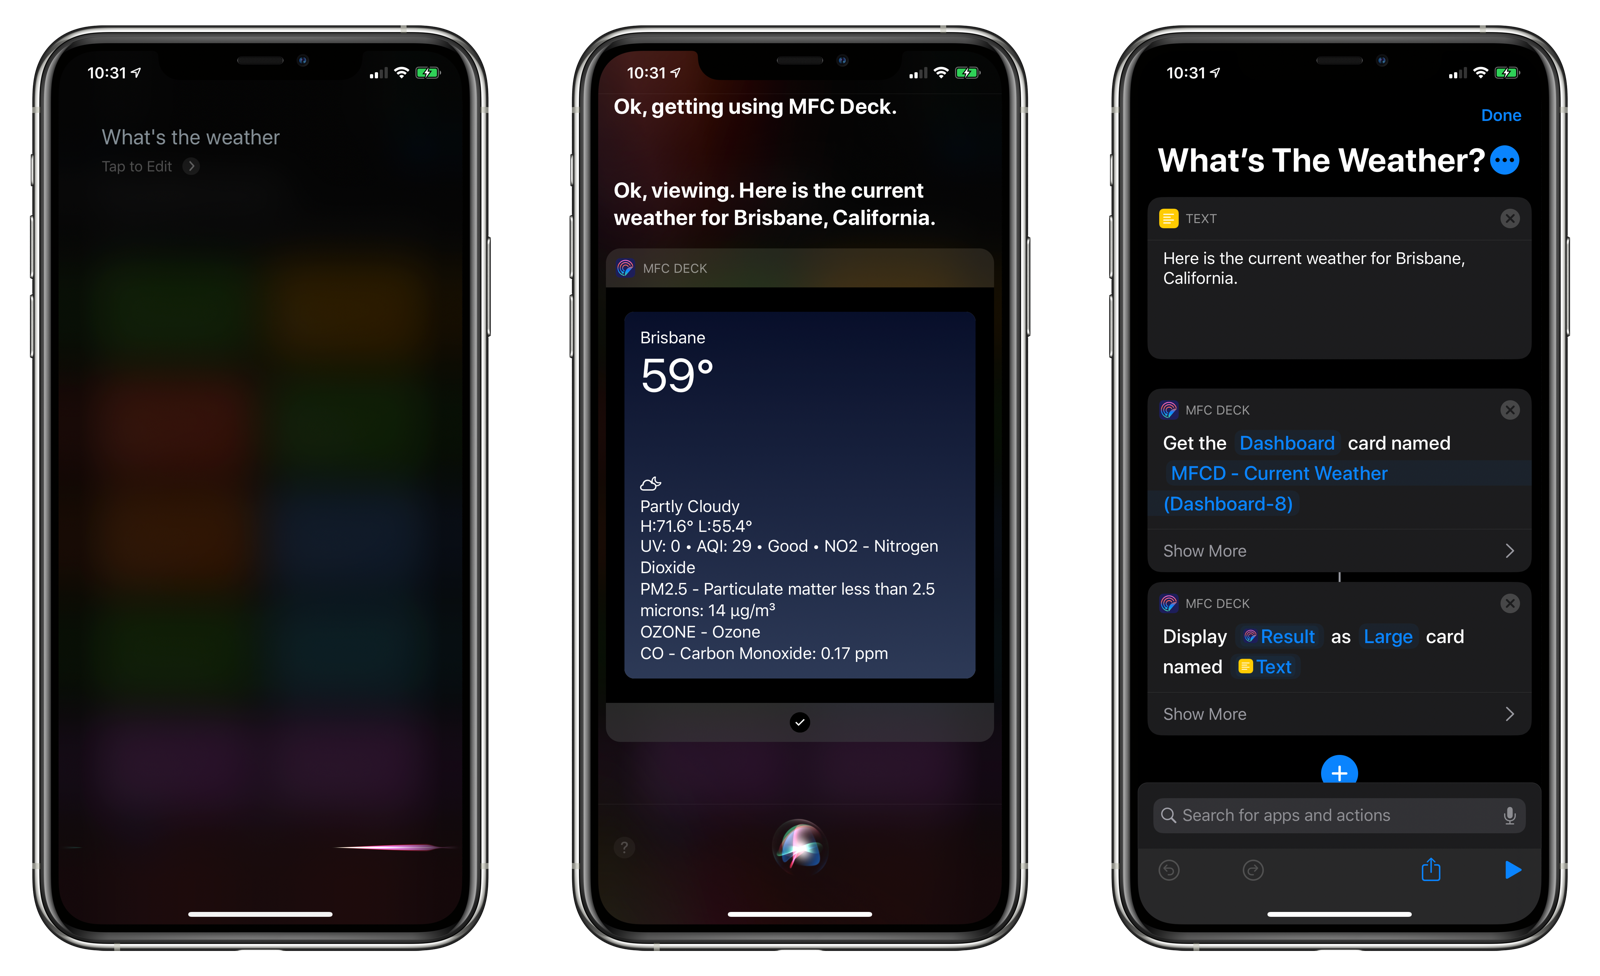 MFC Deck can display cards right in Siri